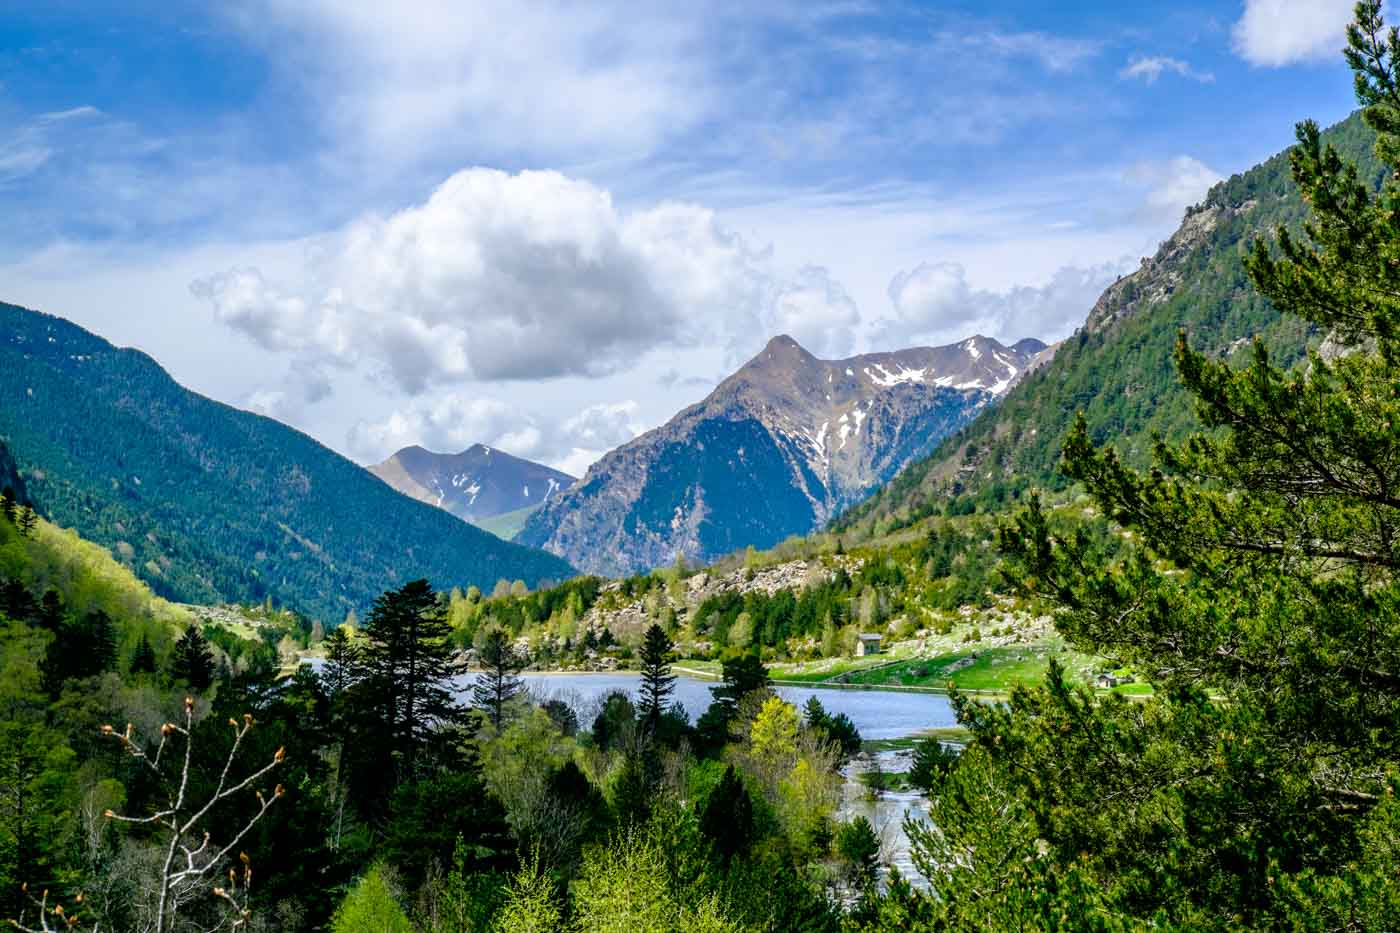 Four Natural Elements of the Lleida Pyrenees in Spain